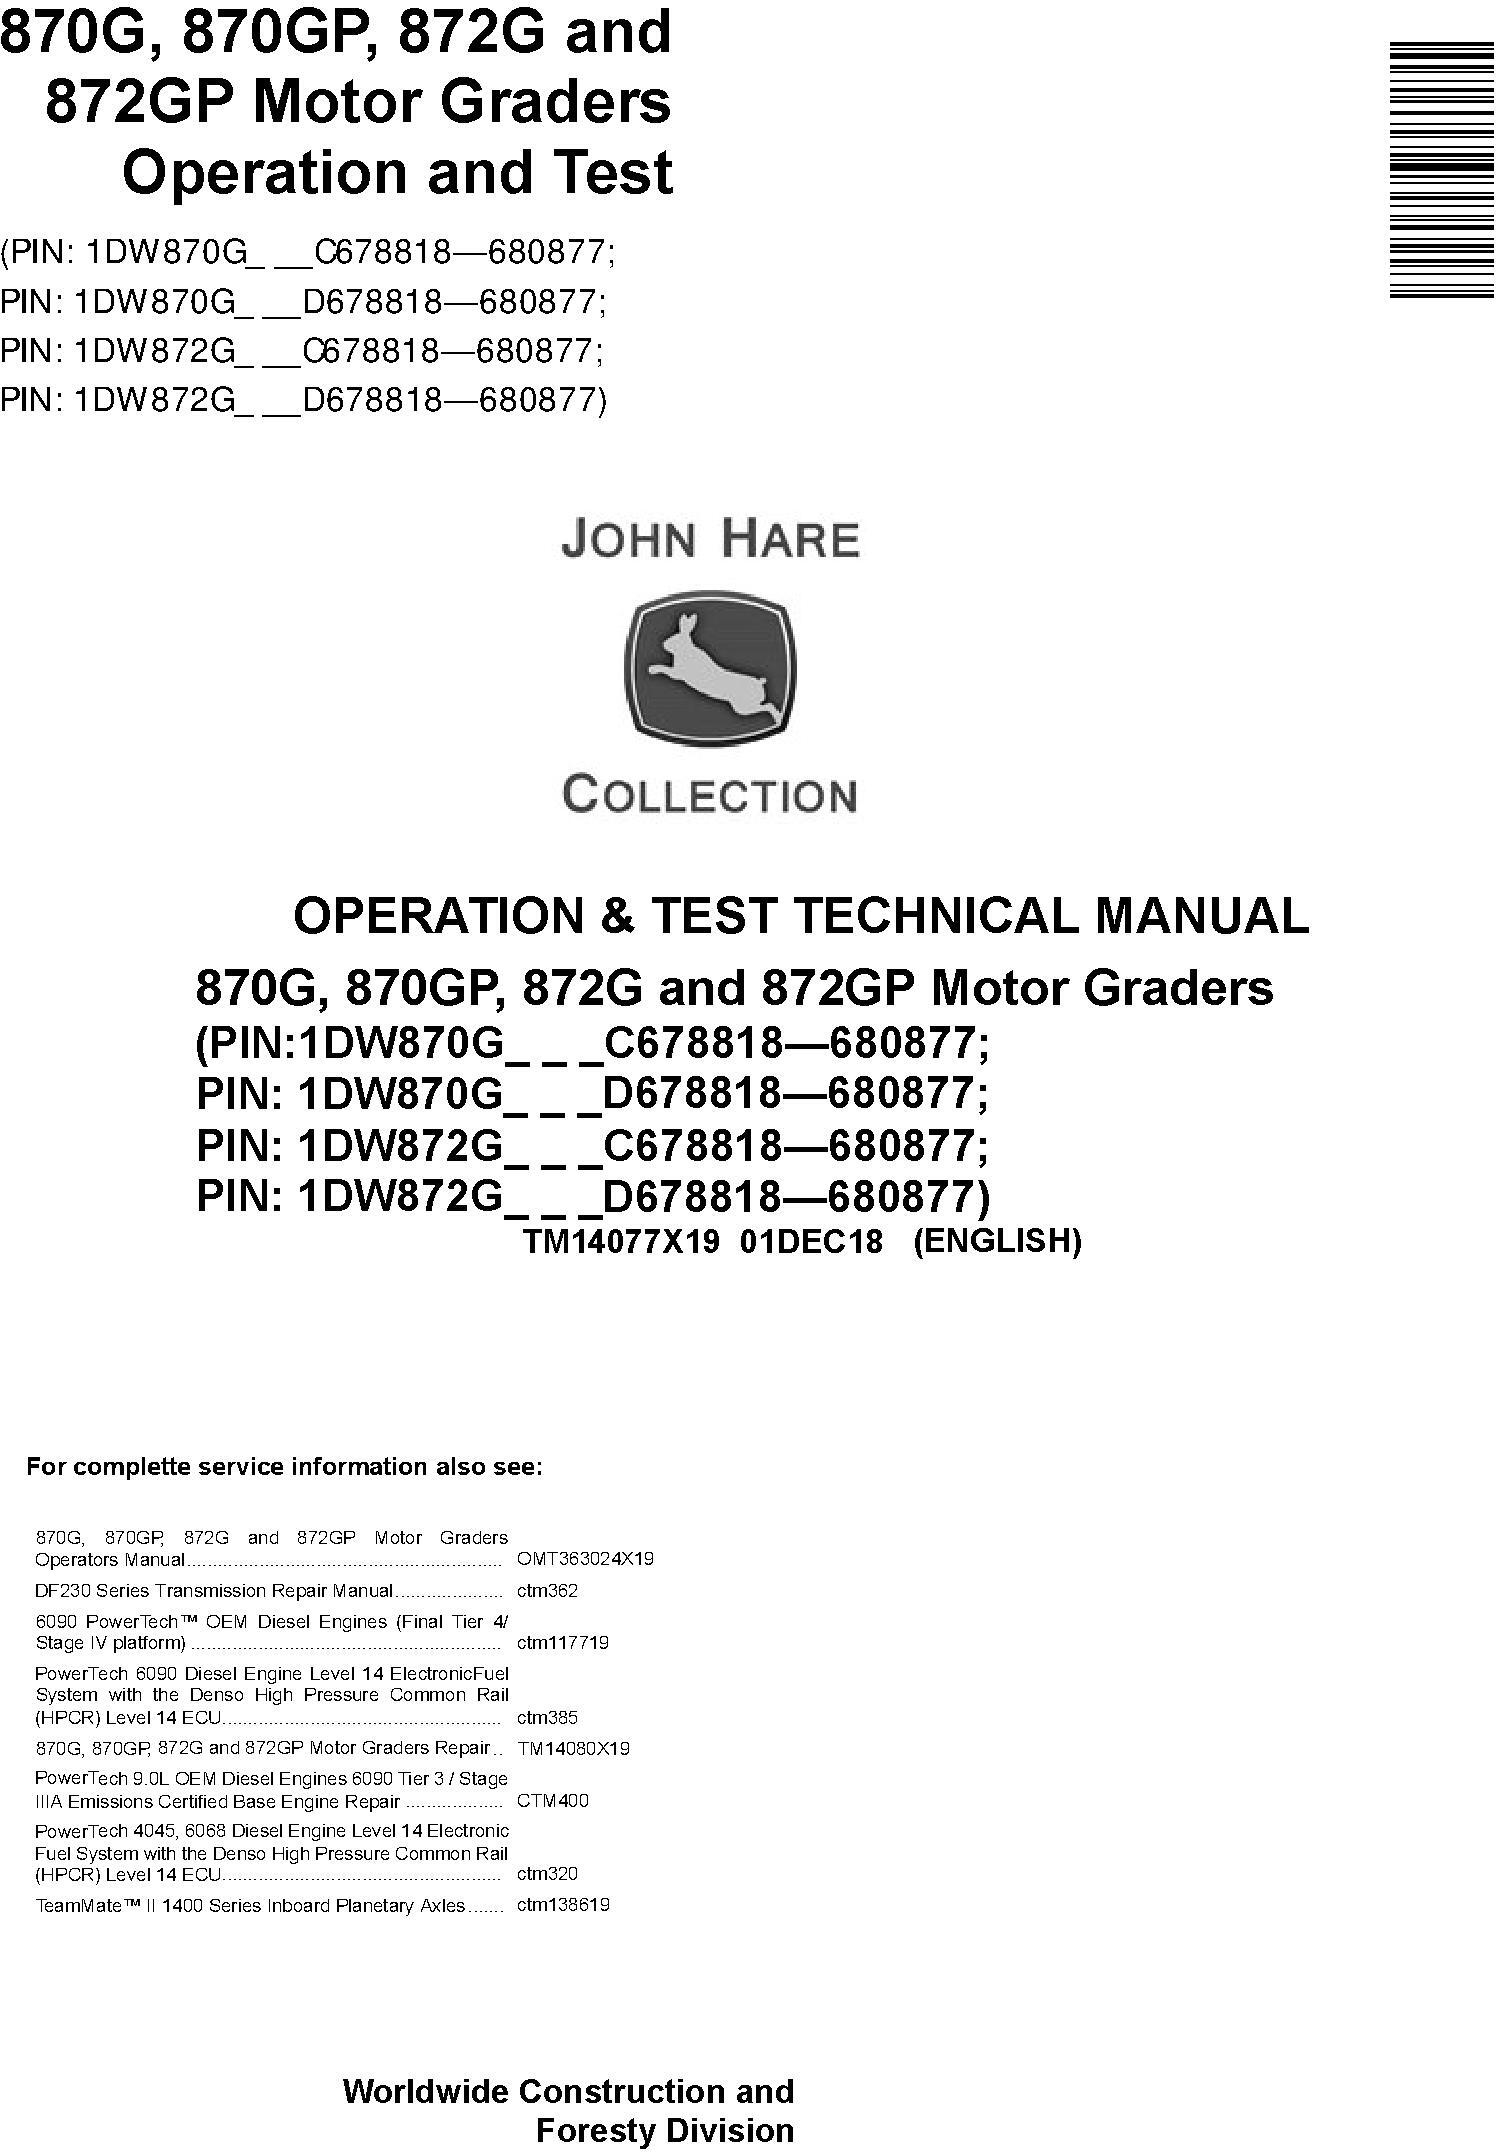 John Deere 870G, 870GP, 872G, 872GP (SN.C678818-680877) Motor Graders Diagnostic Manual (TM14077X19) - 18997